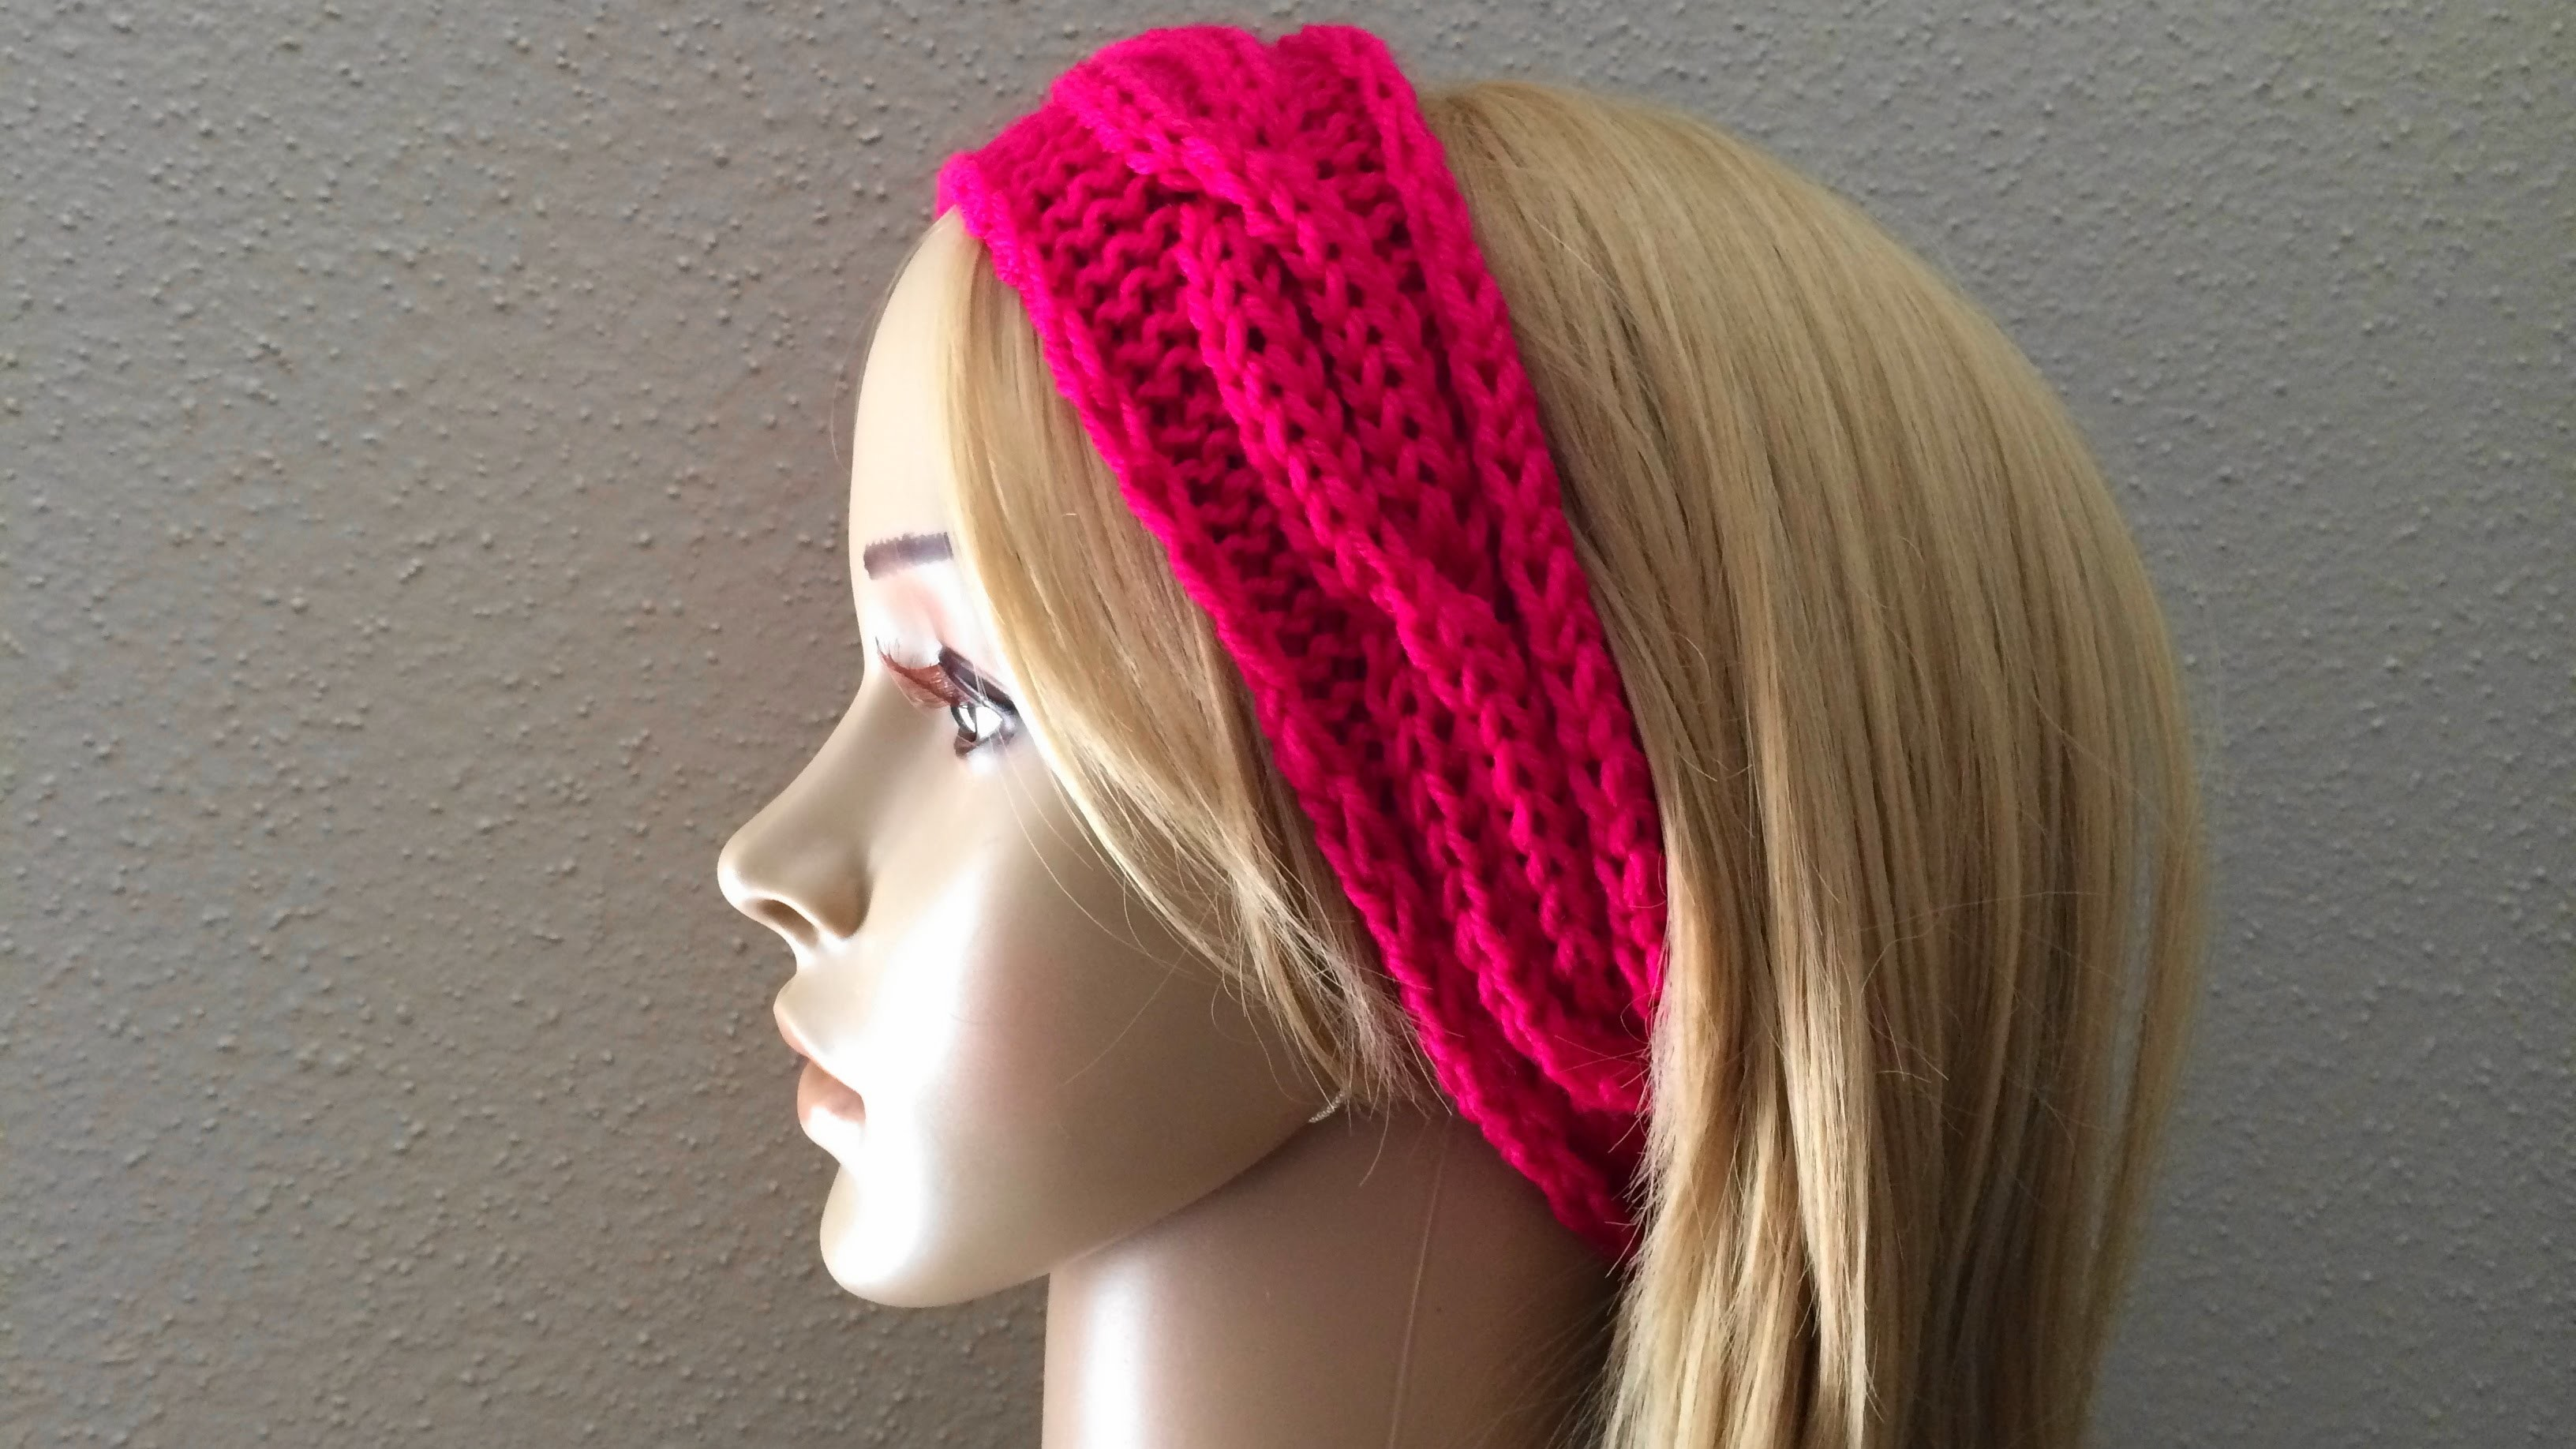 How To Knit A Cable Headband, Lilu's Knitting Corner Video # 38